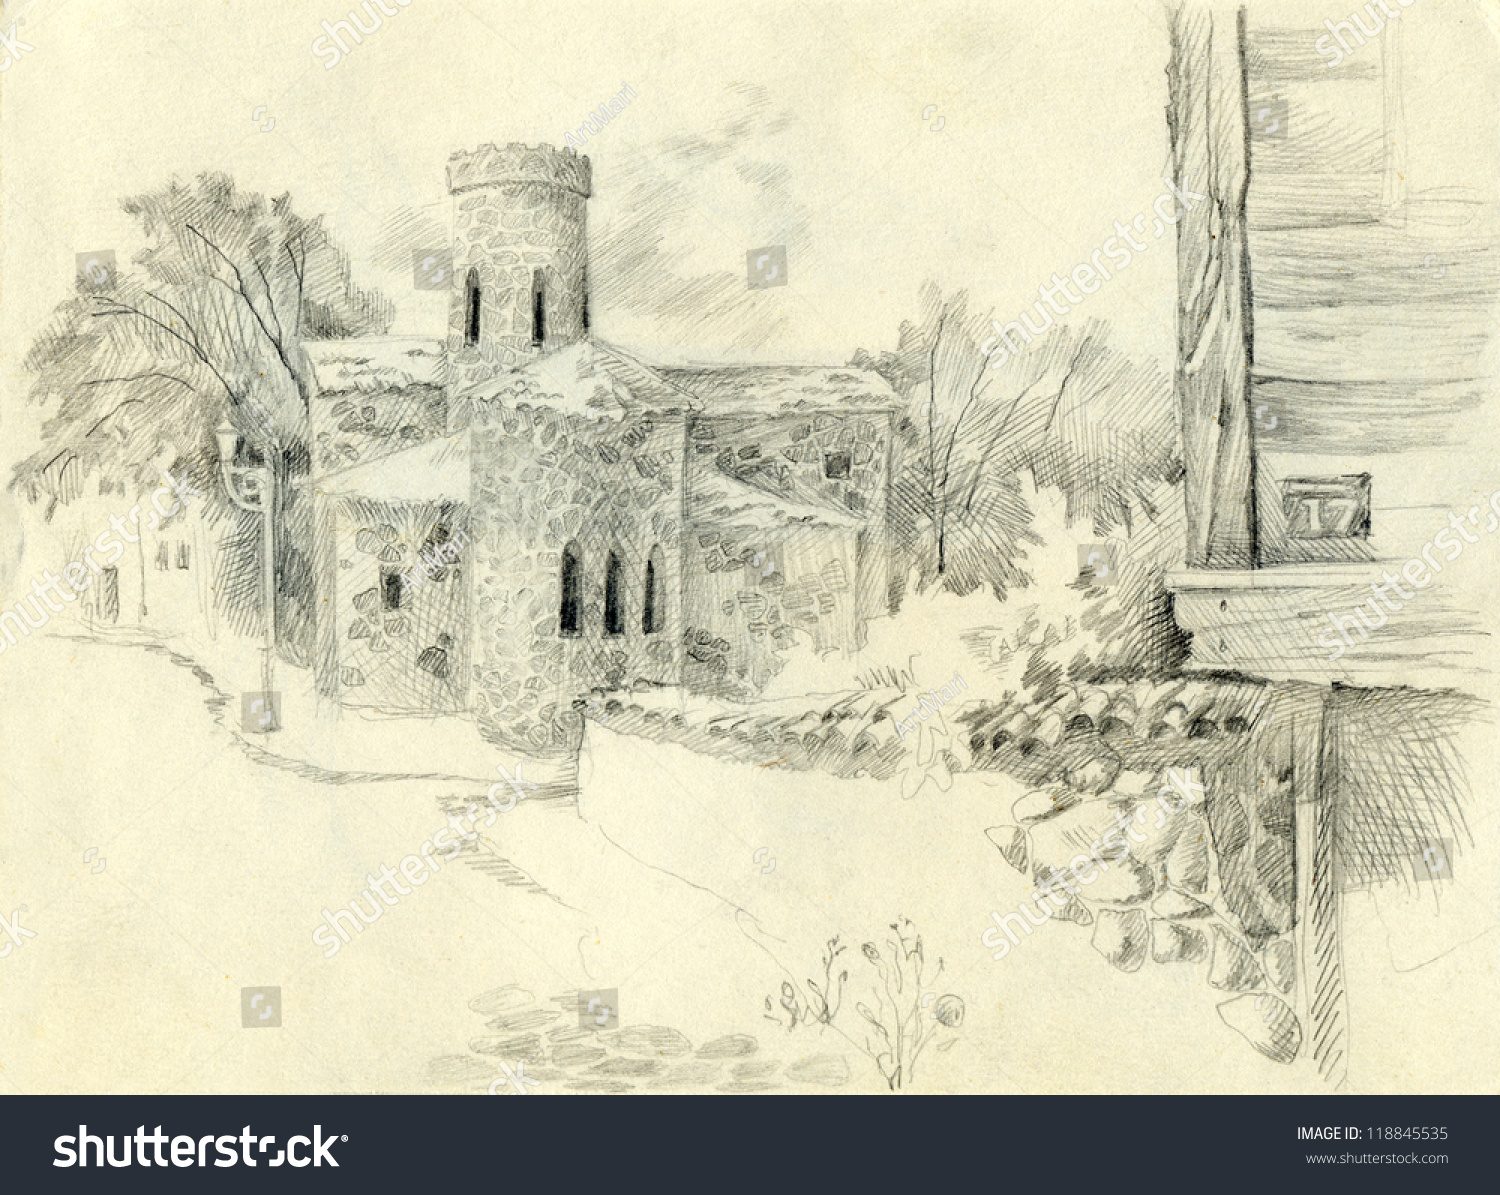 Pencil drawing a sketch of the urban landscape with the old stone church at the